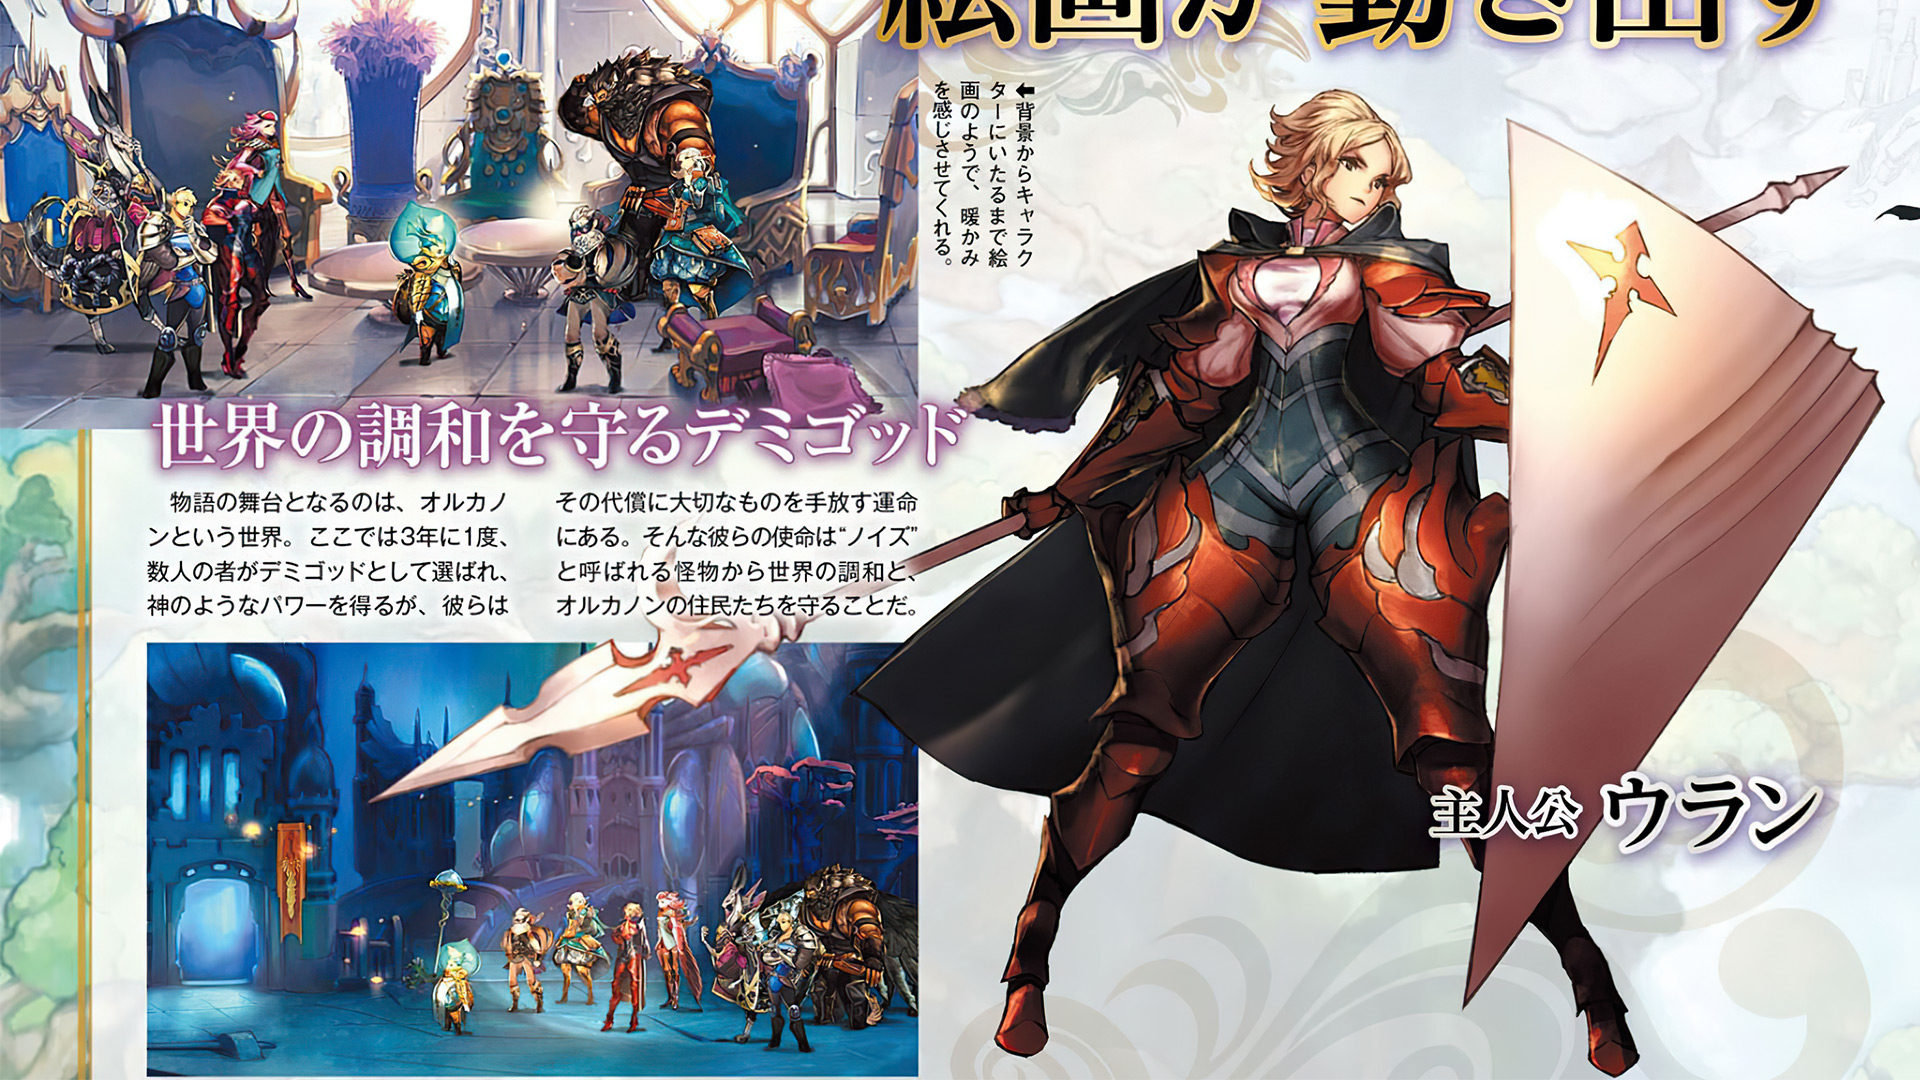 Astria Ascending Famitsu scan showcasing a female warrior holding a large shield and spear.